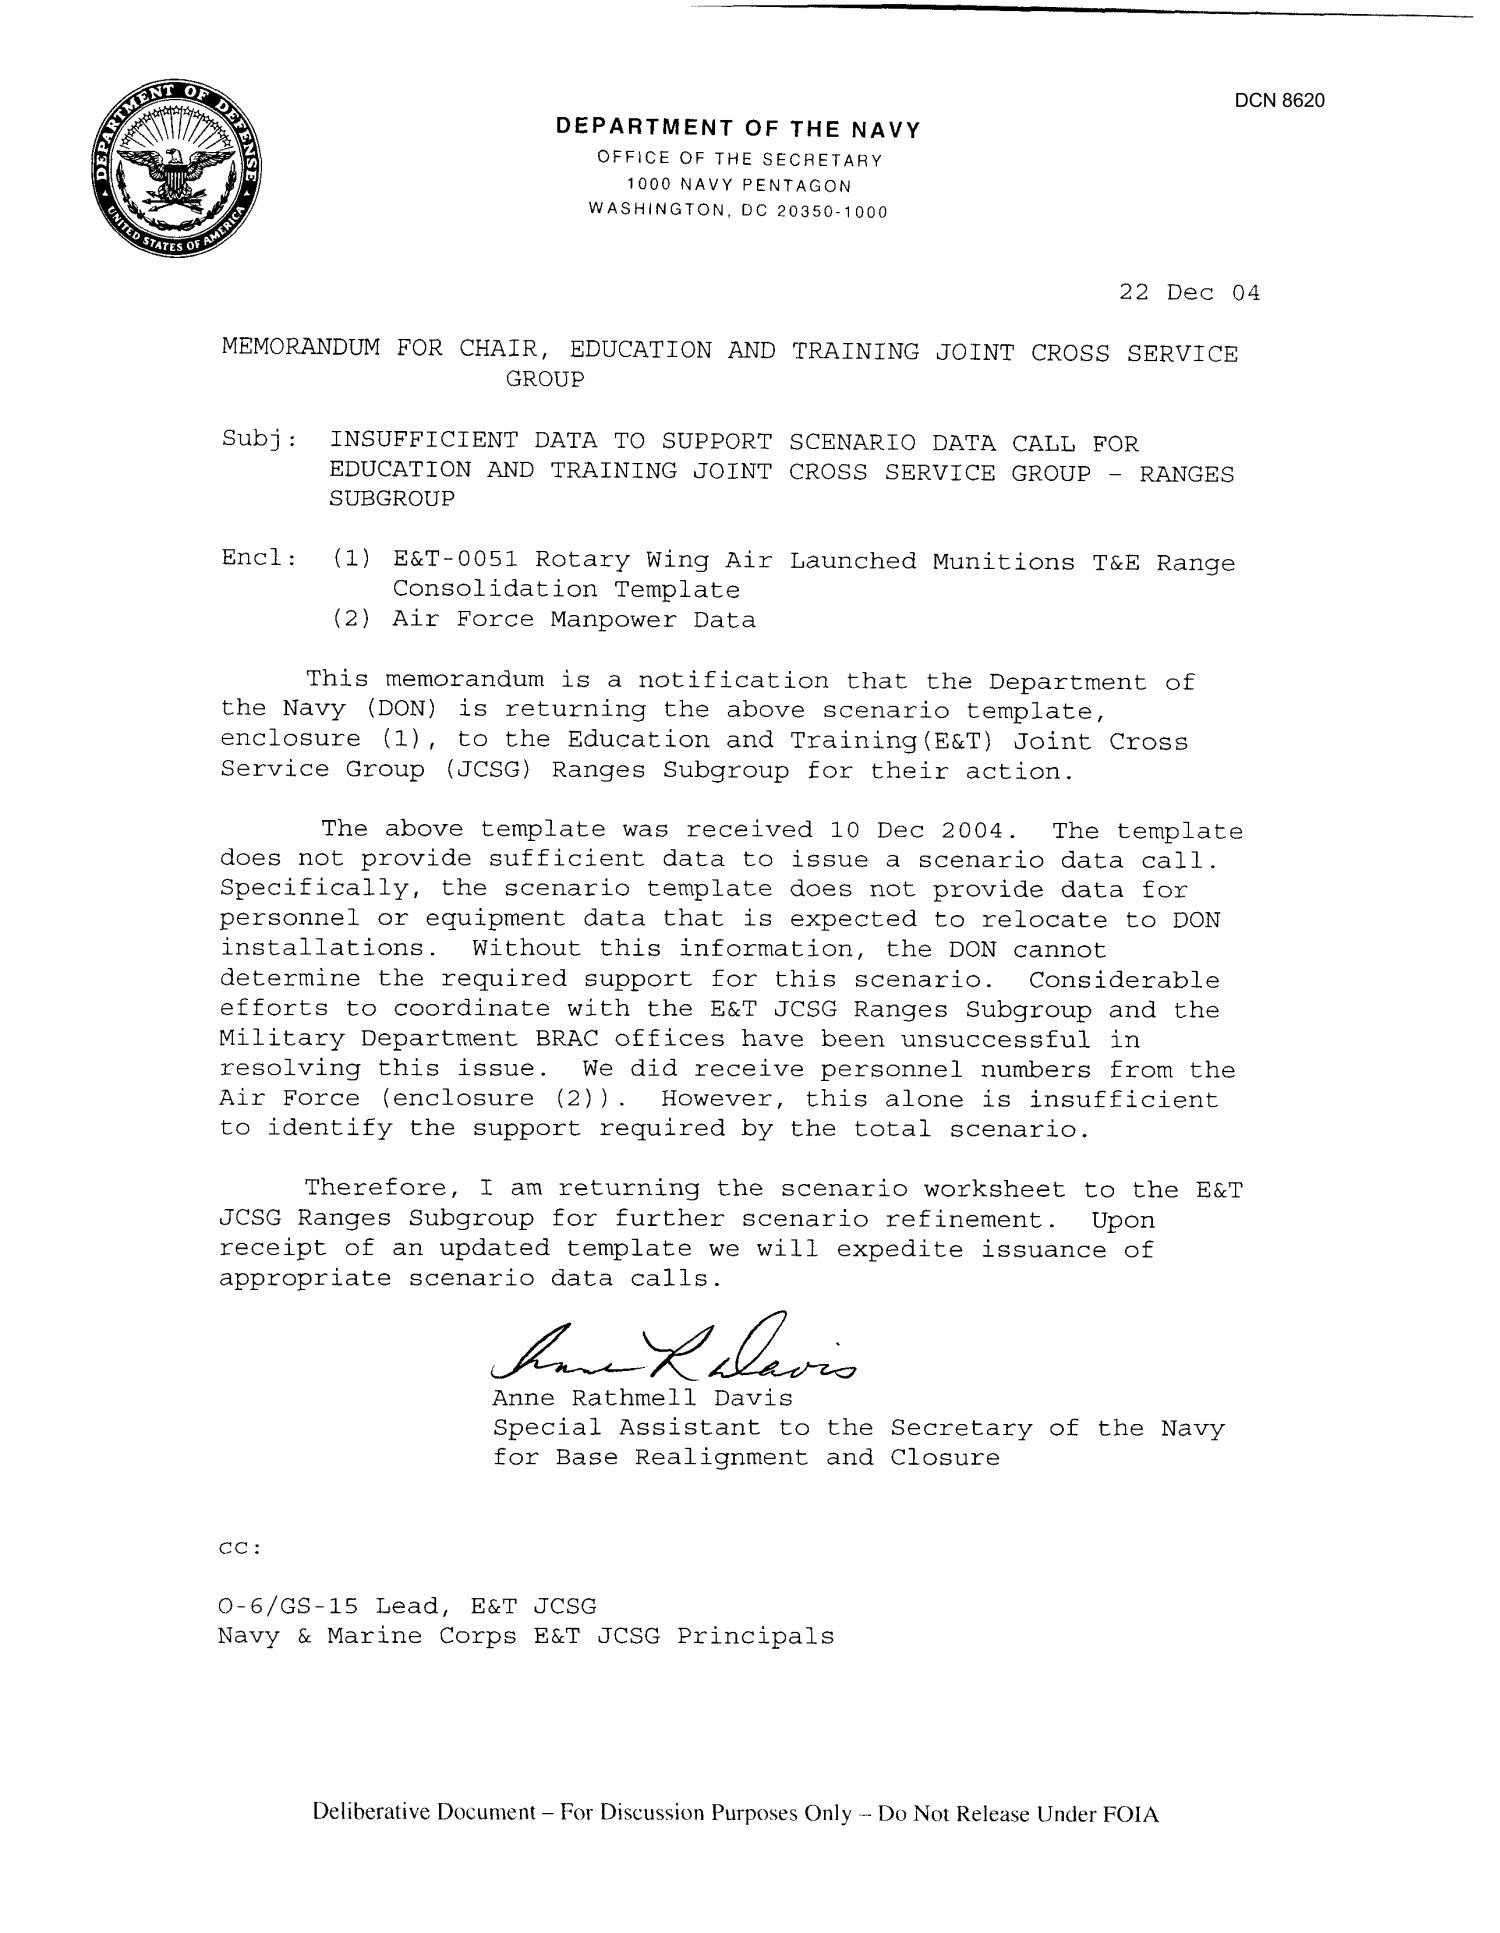 Memorandum for Record Template Department Of the Navy Memorandum for Chair Education